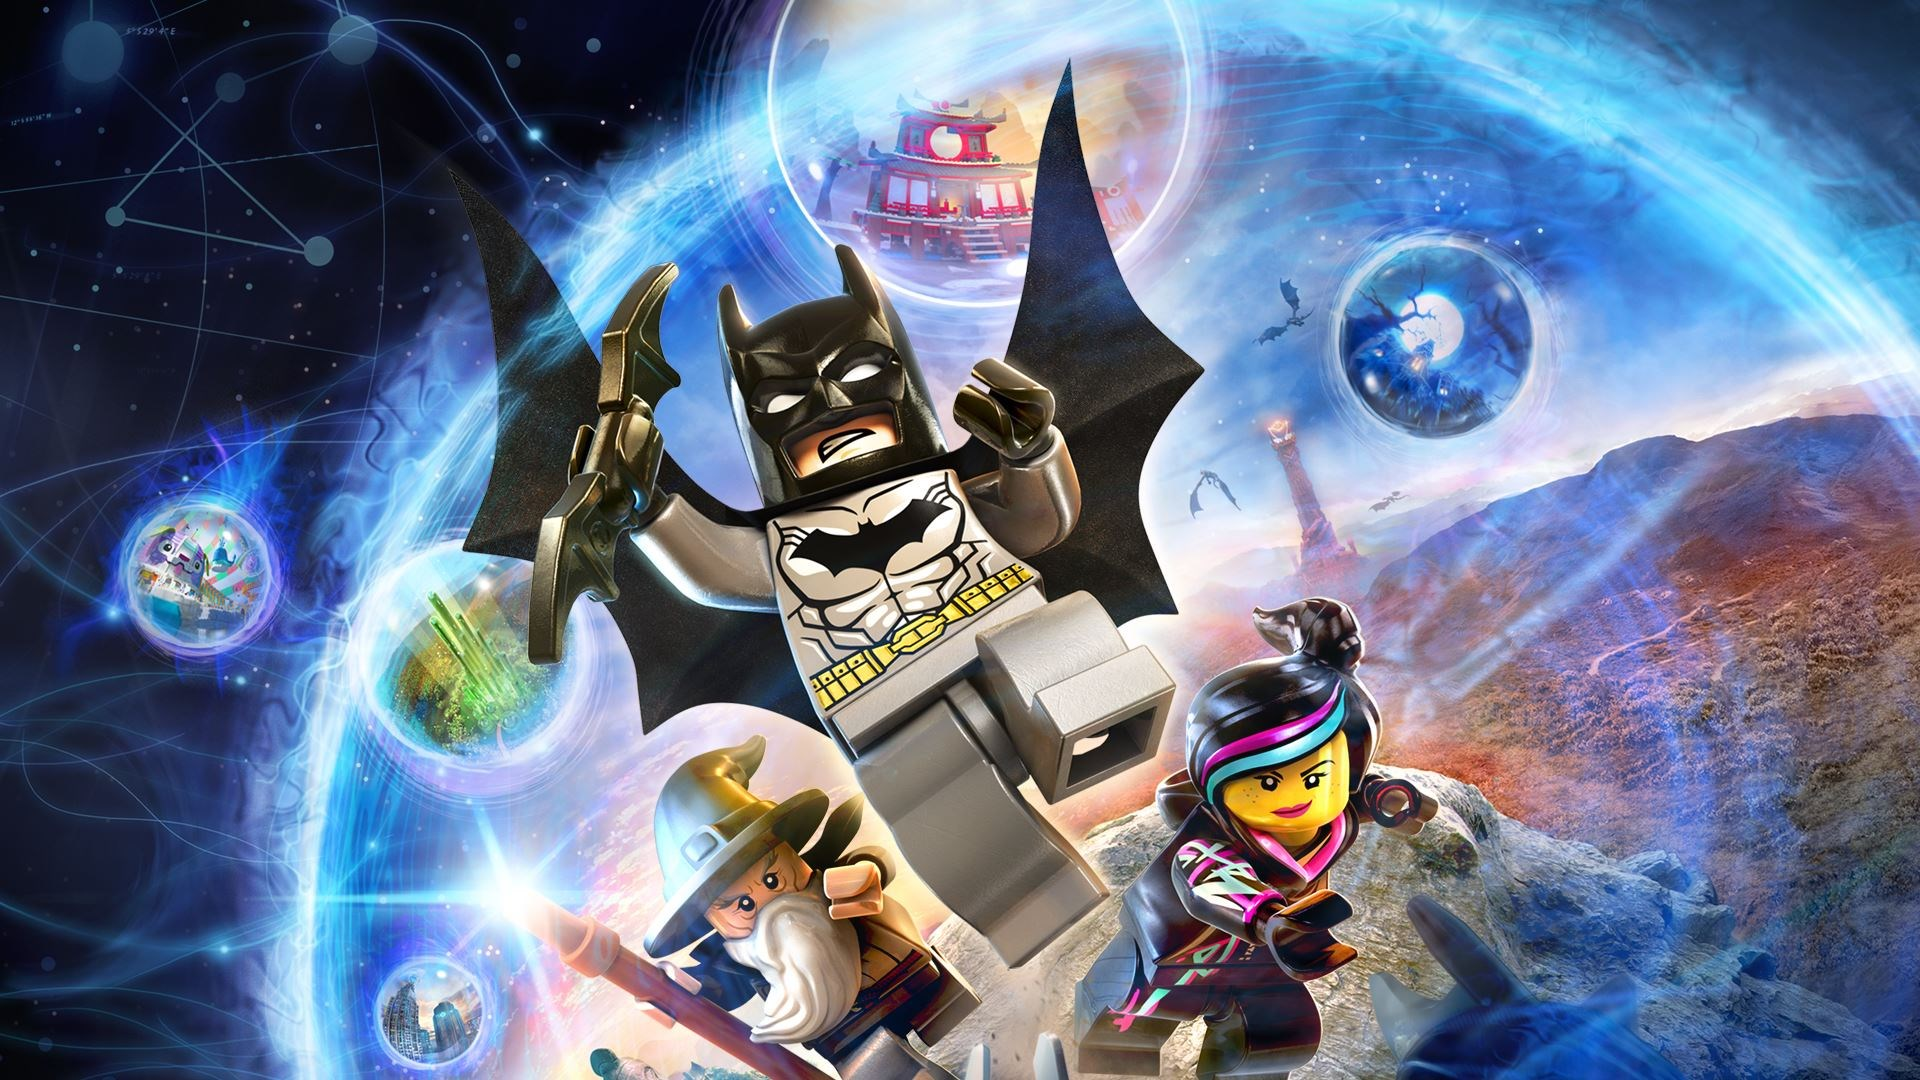 lego-hd-1080p-windows-wallpaper-wp3607899